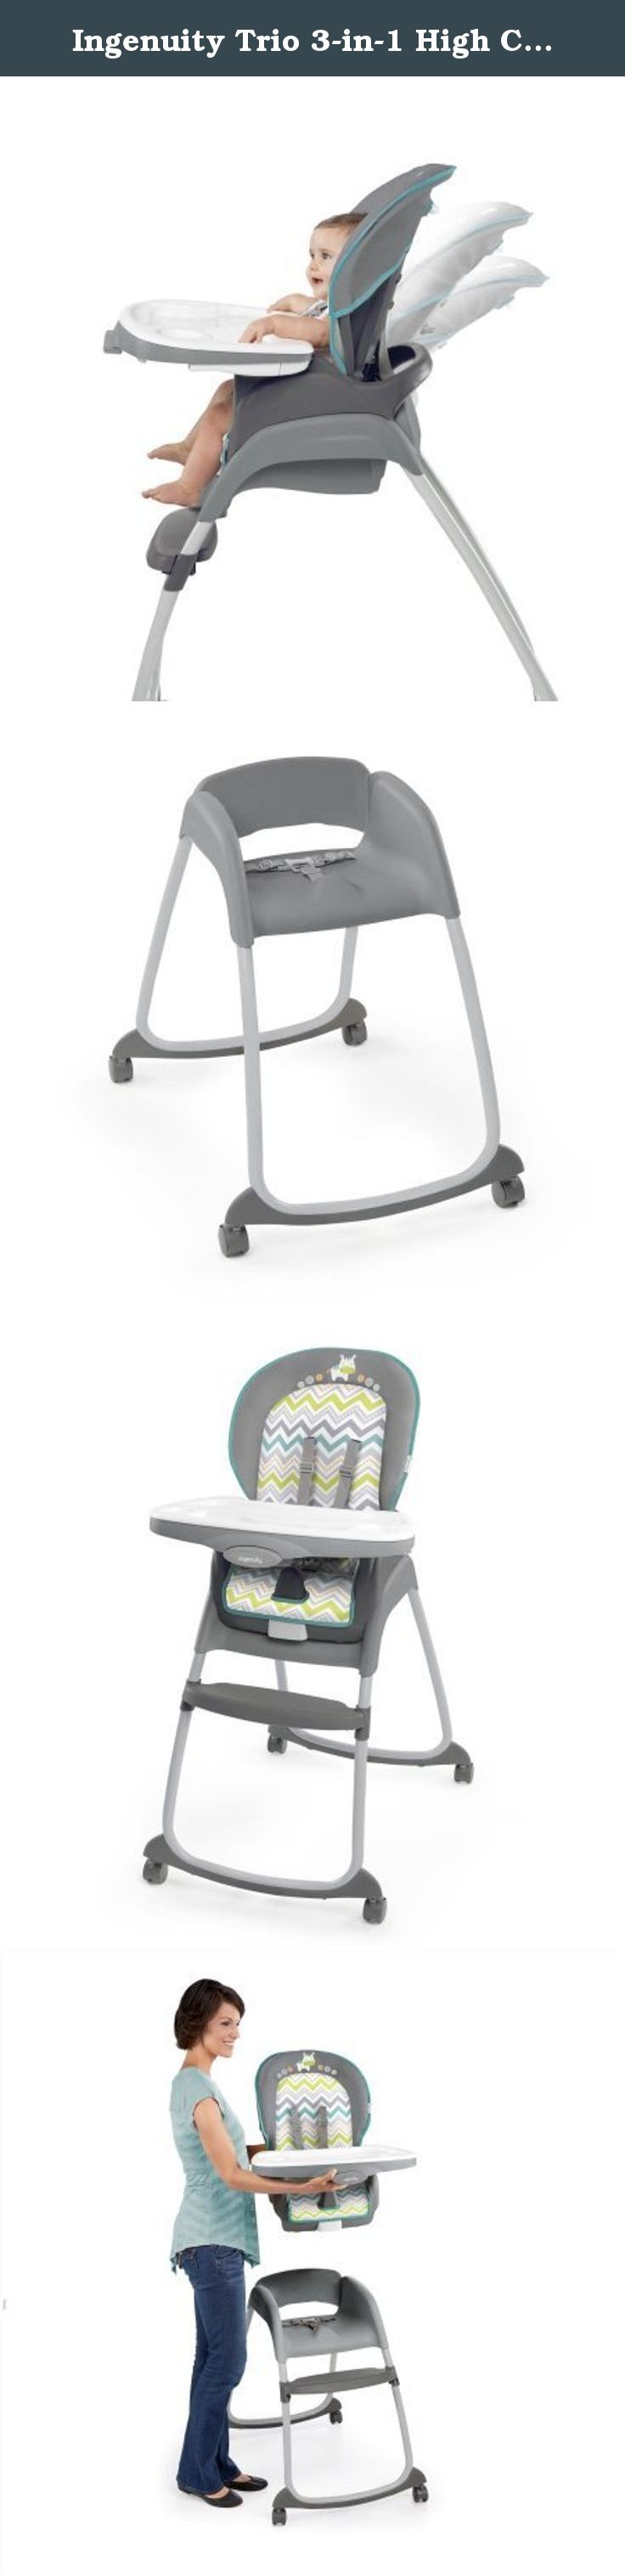 179 best Baby Chair images on Pinterest